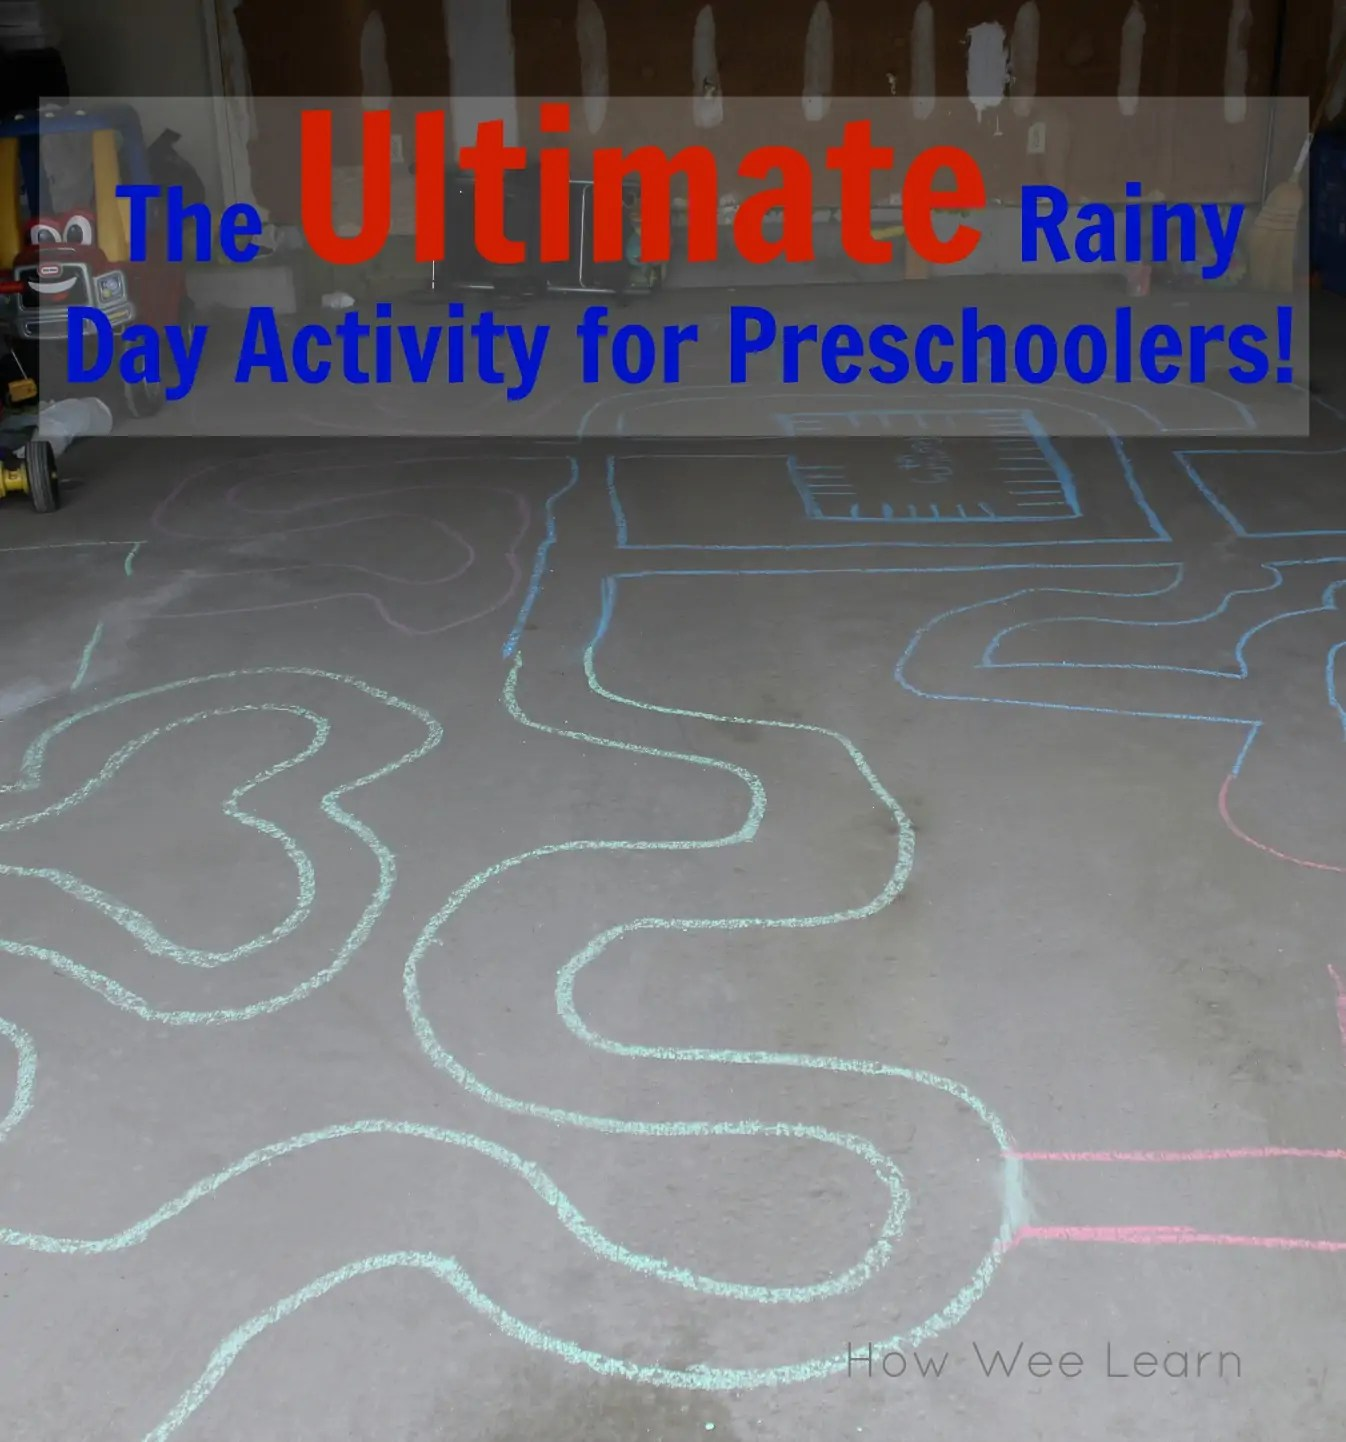 The Ultimate Rainy Day Activity For Preschoolers